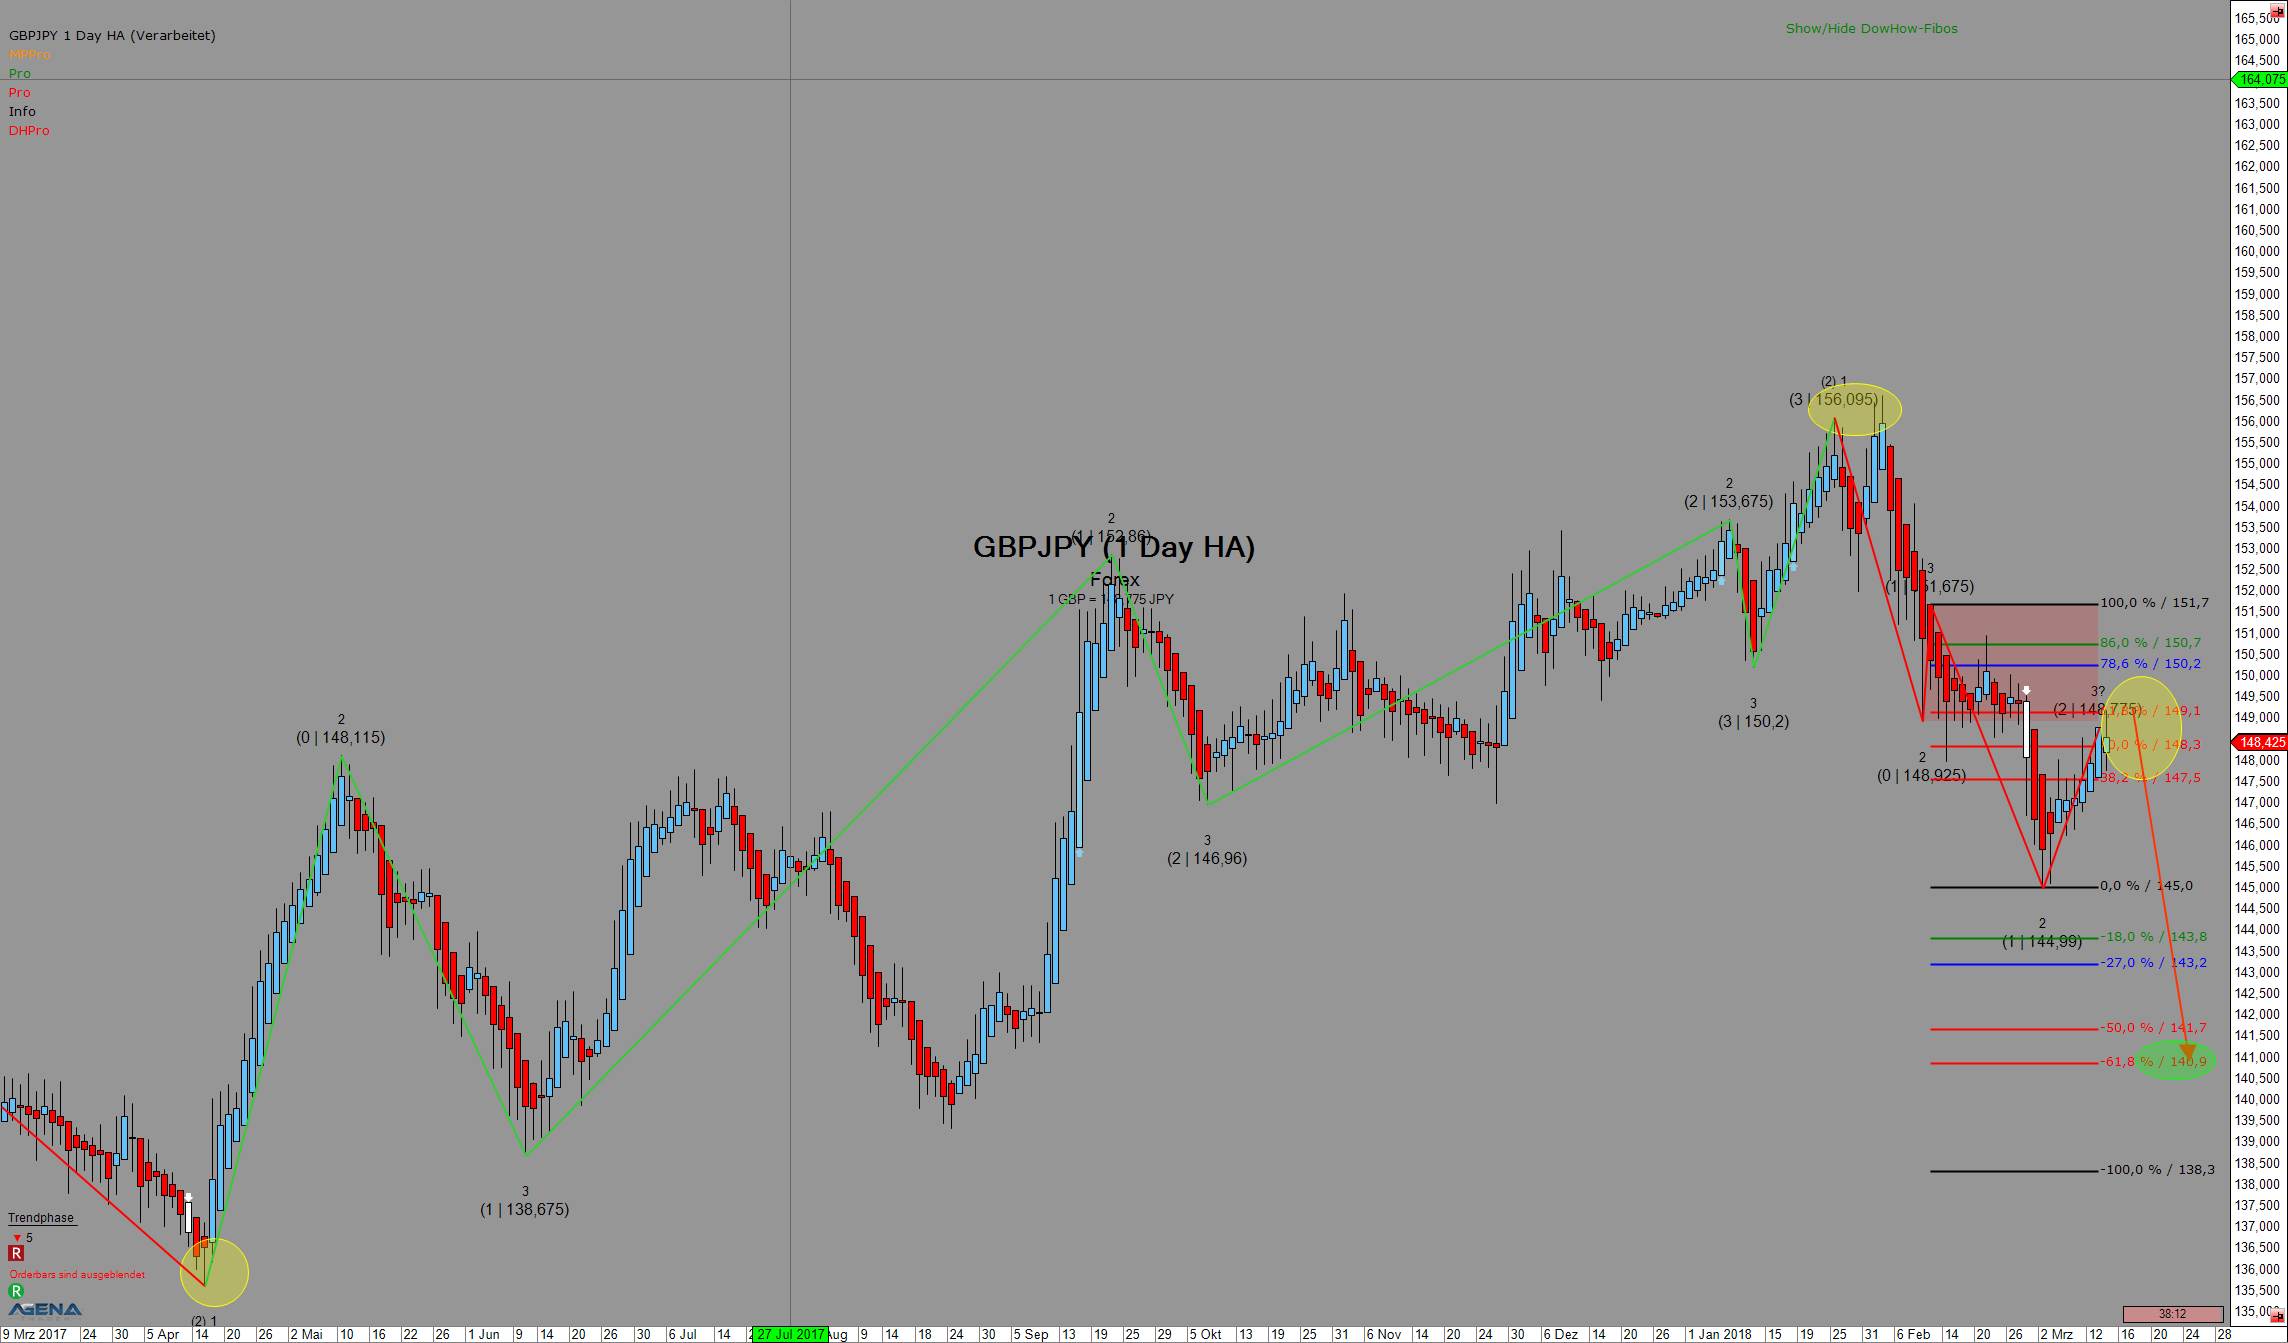 Forex-Pair GBPJPY Tageschart mit Trading-Chance